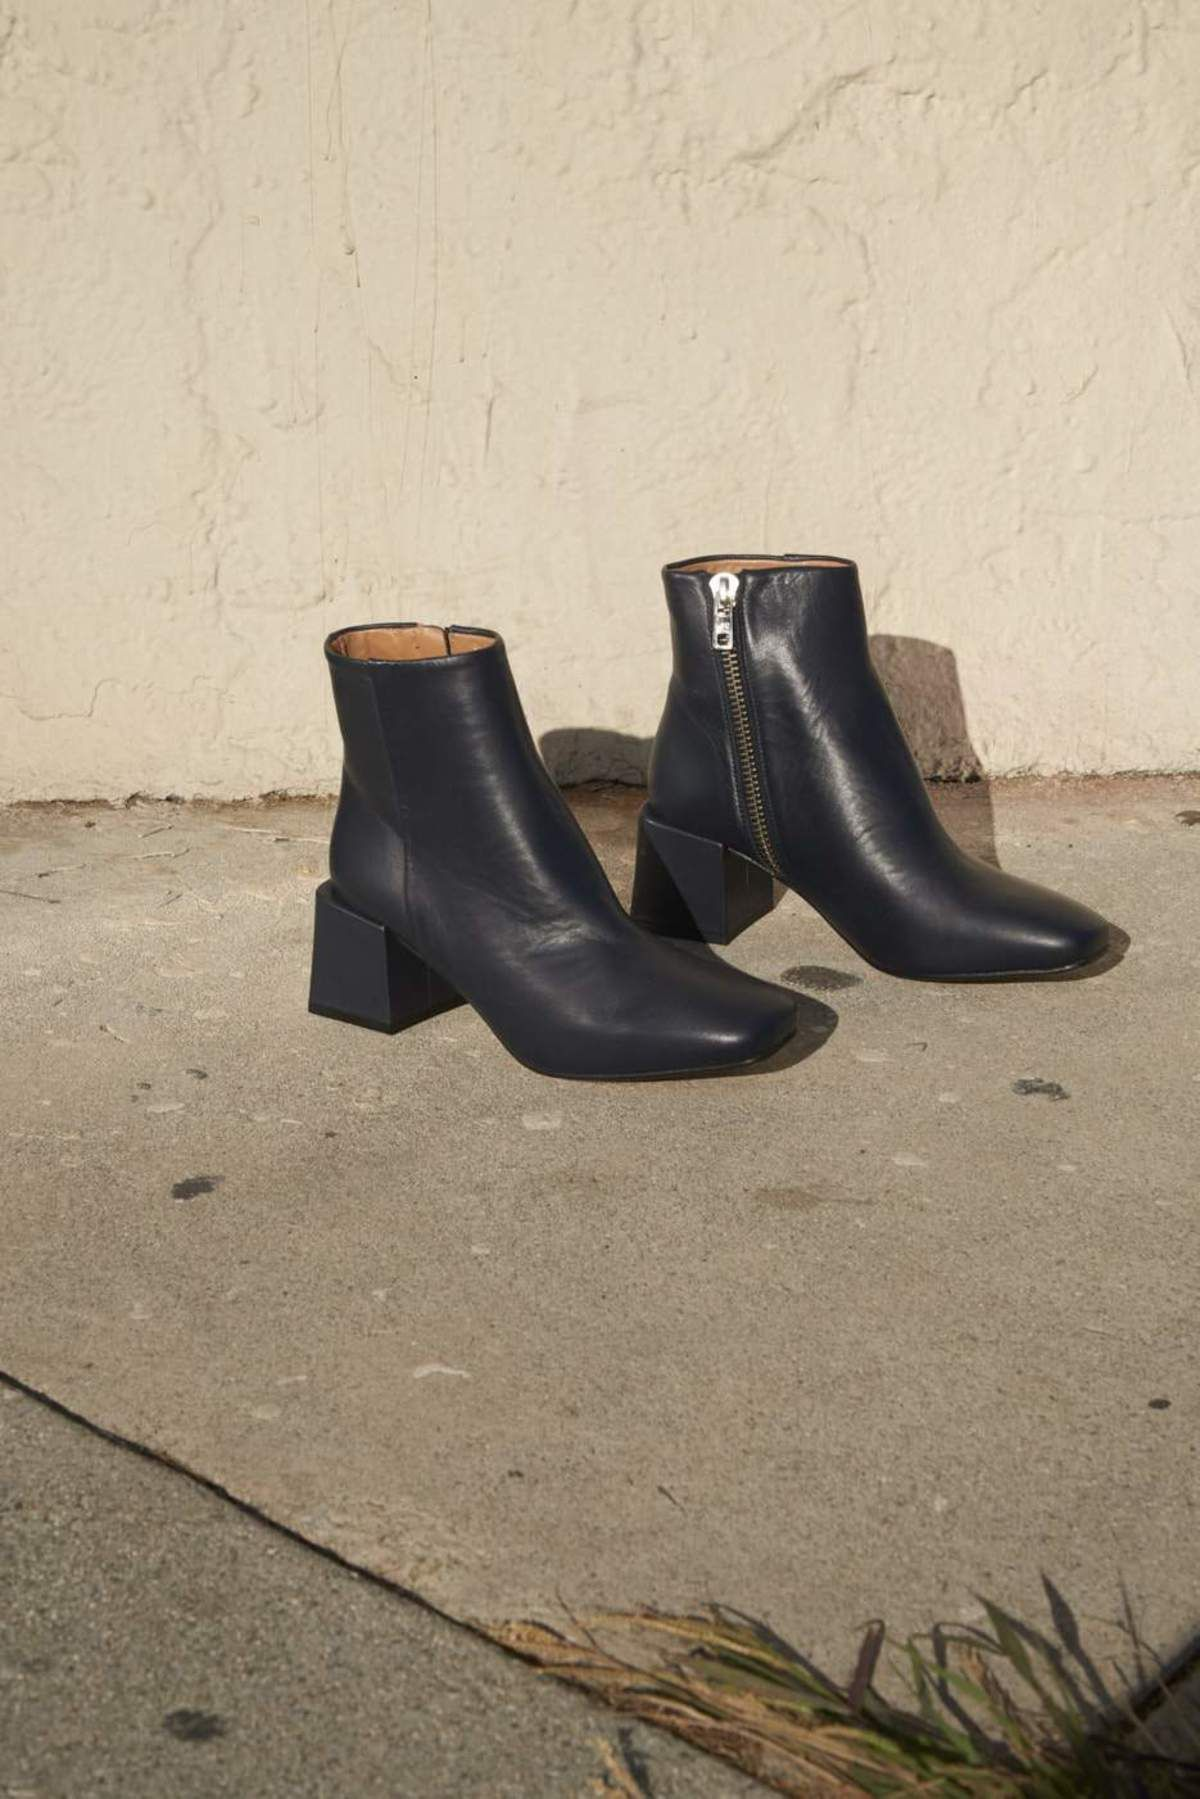 Loq Lazaro Nuit On Garmentory Navy Ankle Boots Boots Shoe Wishlist